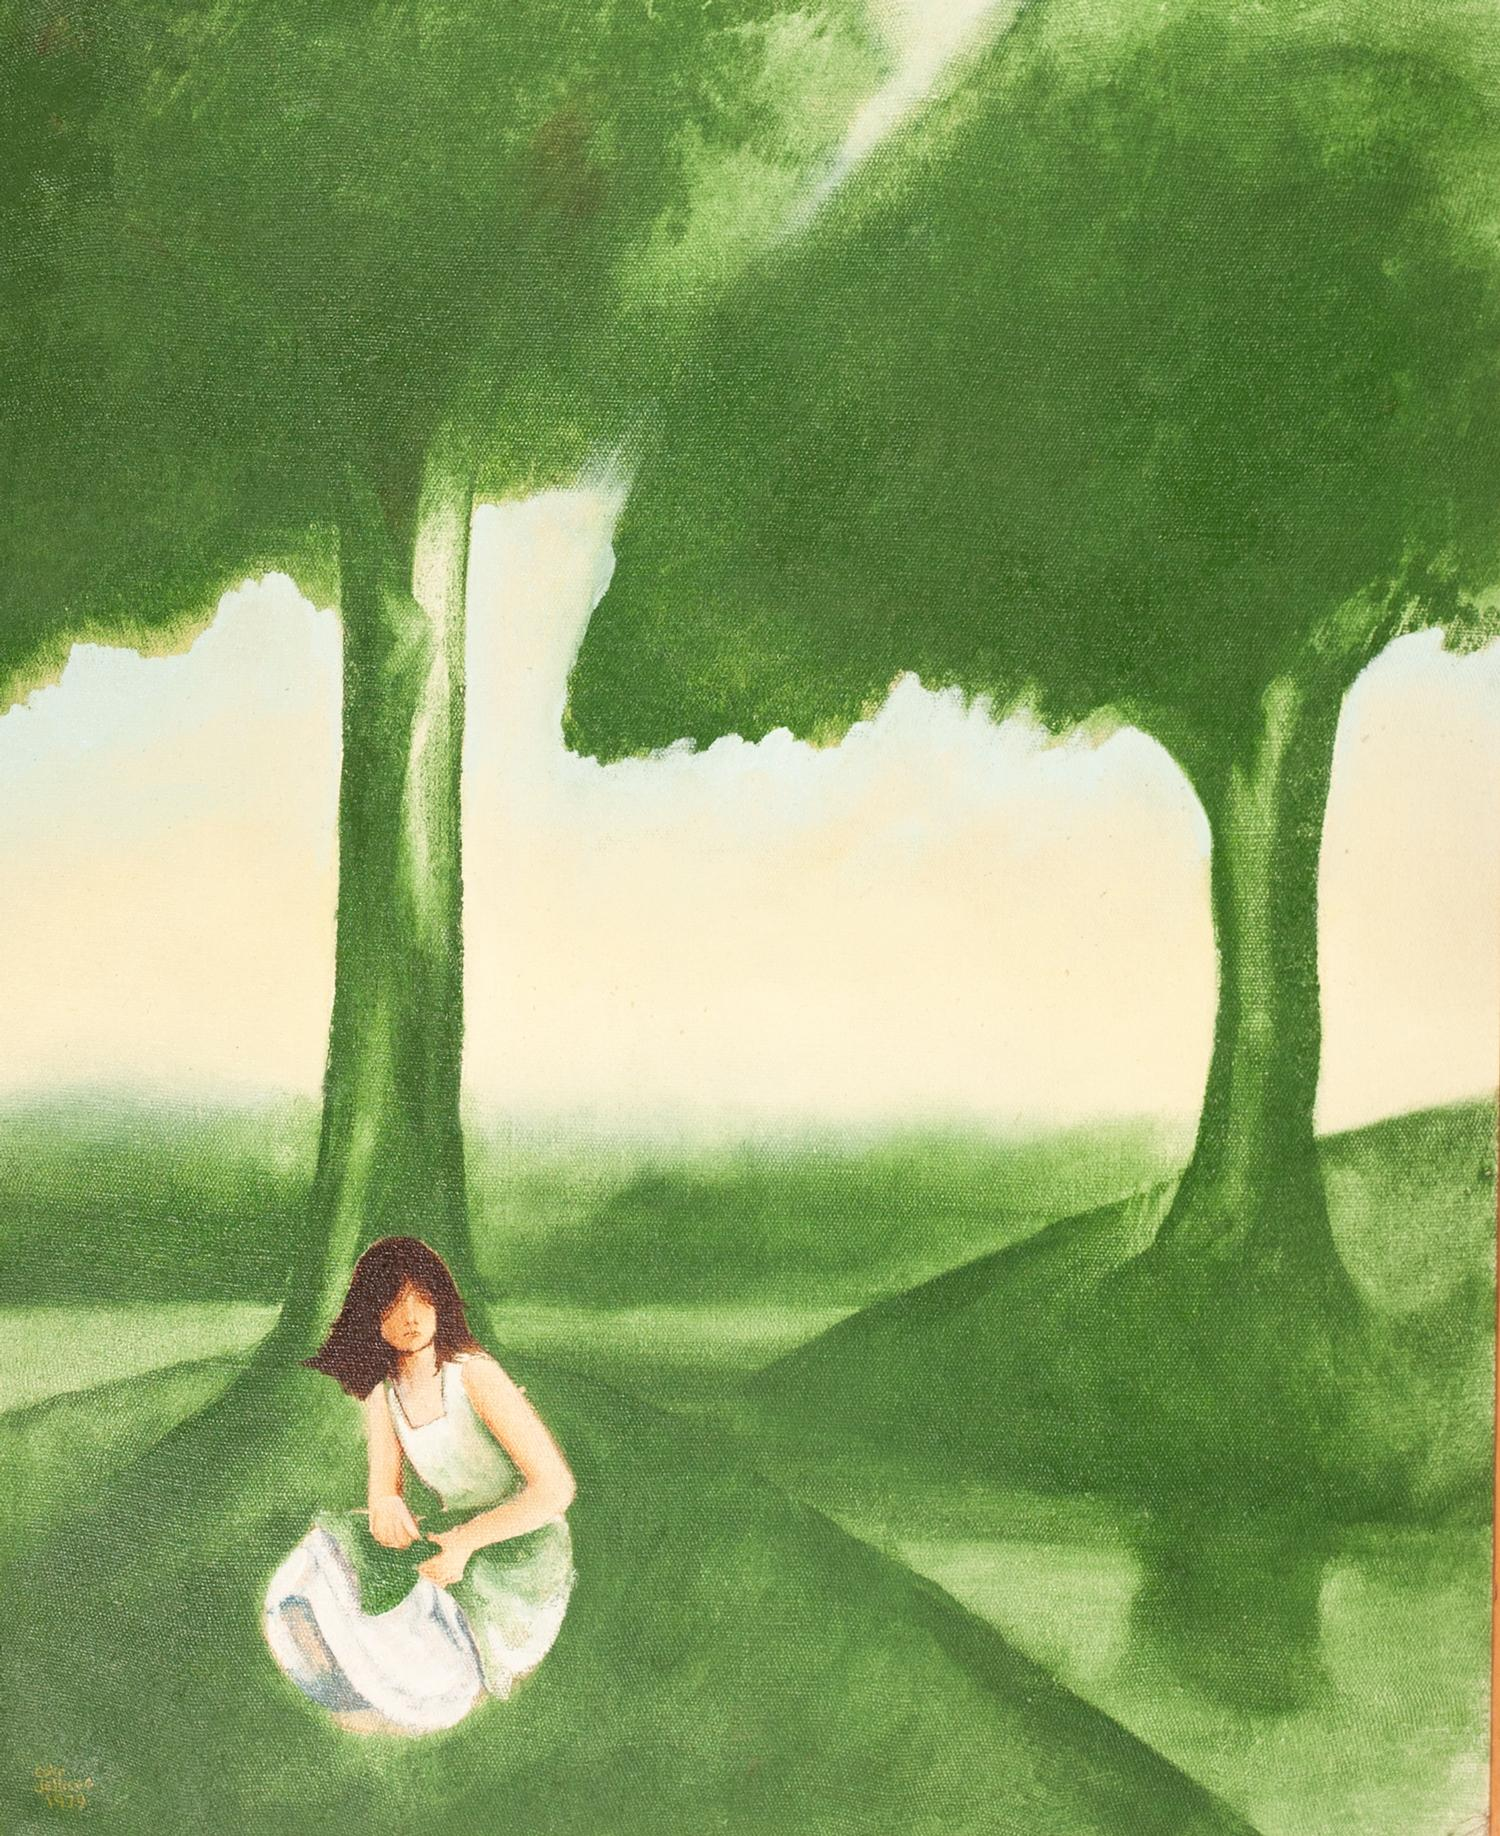 Lot 81 - COLIN JELLICOE (1942-2018) OIL ON CANVAS ?River Rendezvous and Waiting Girl? Signed and dated